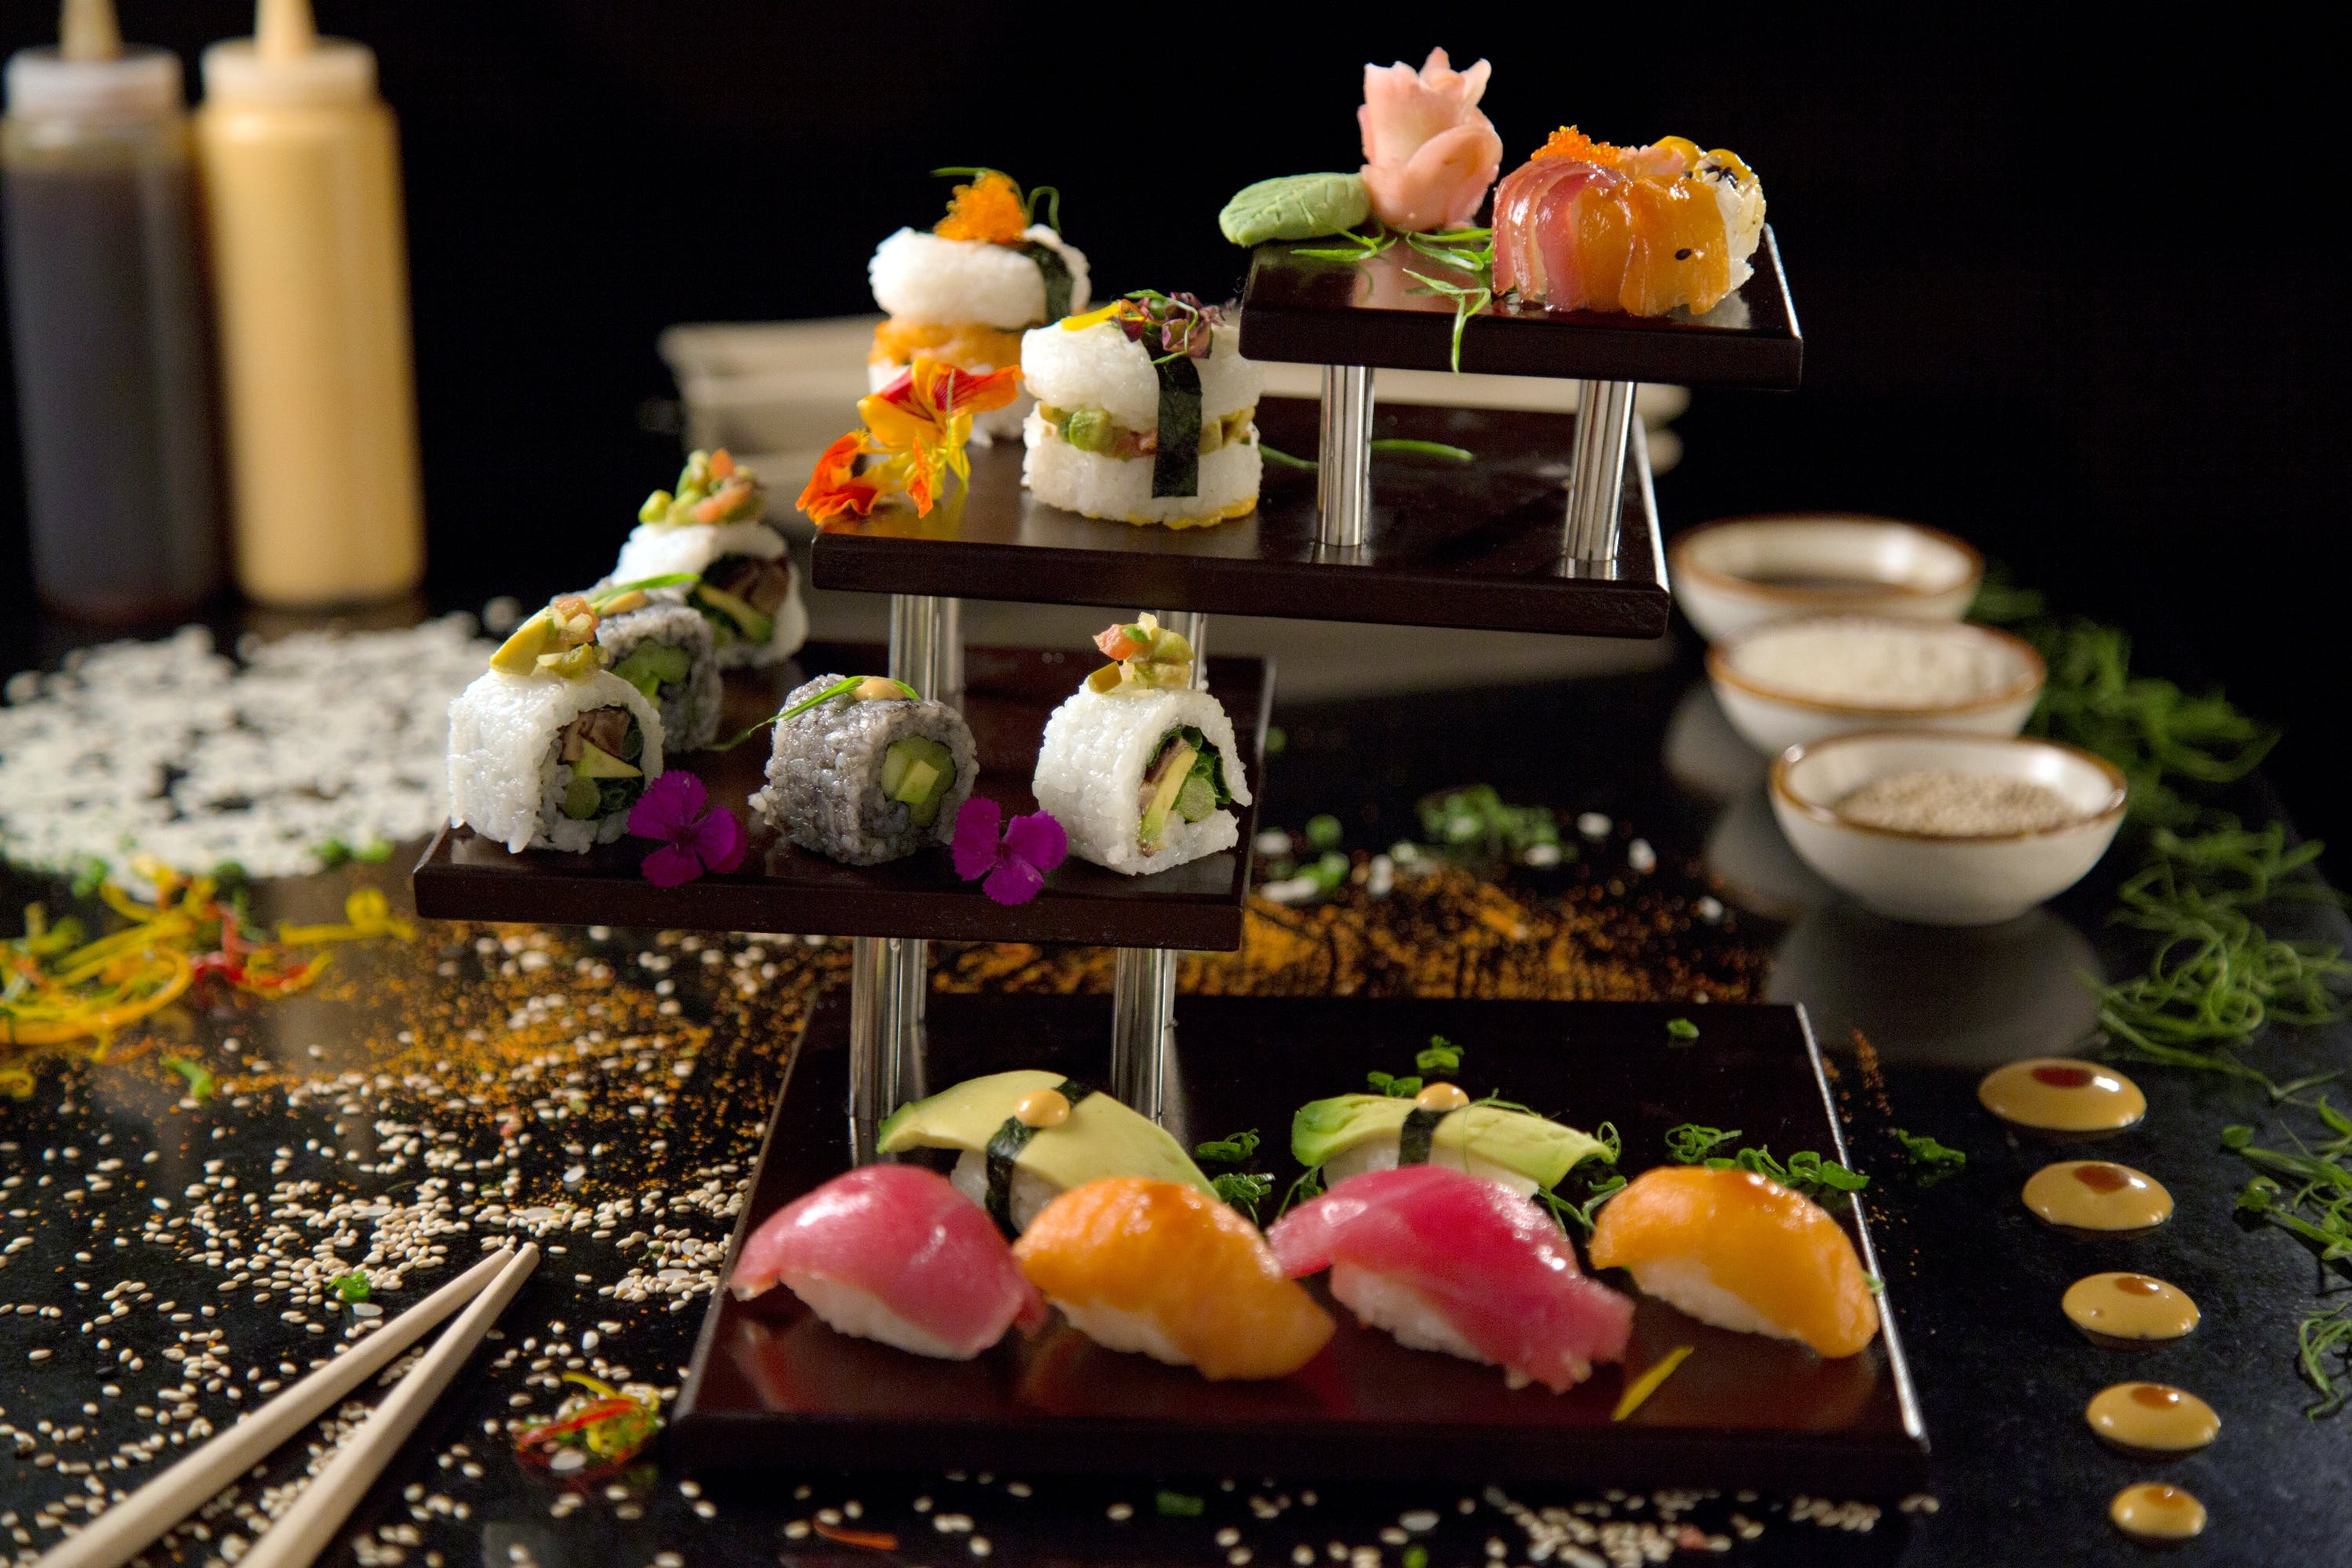 Lunchbuffet Amsterdam This Fine Dining Asian Restaurant Is Offering A Limitless Lunch